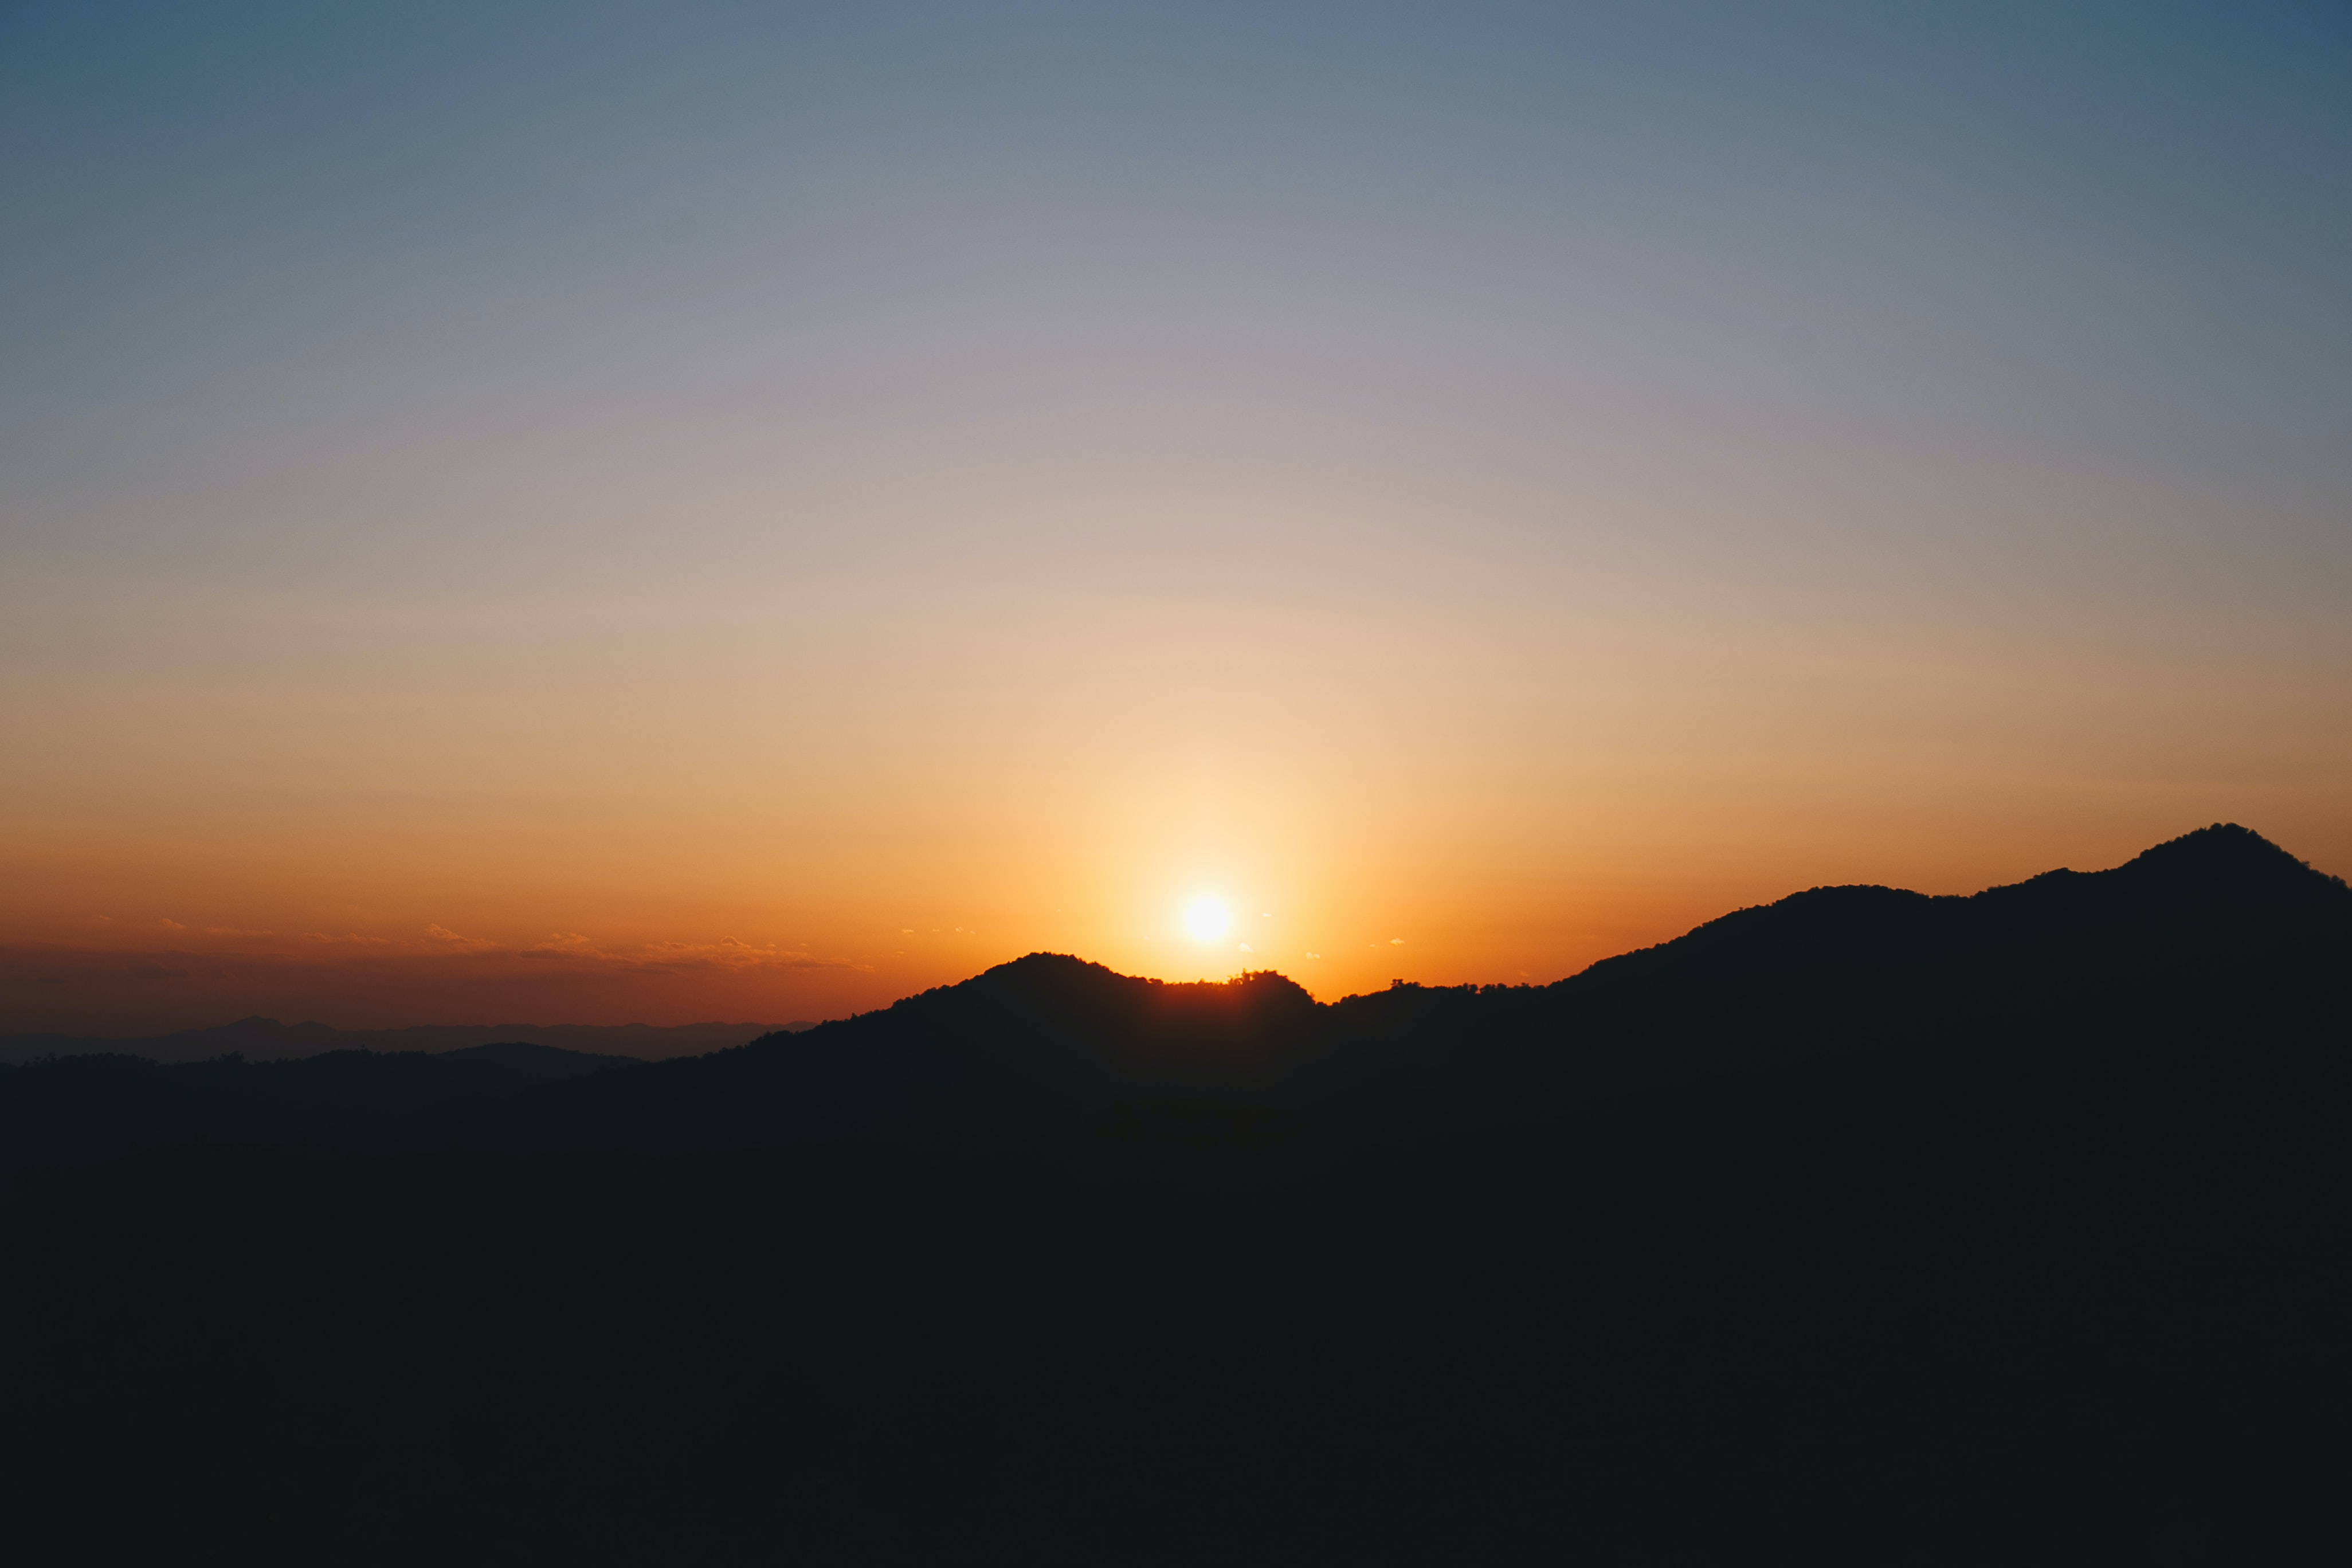 mountain silhouettes during golden hour